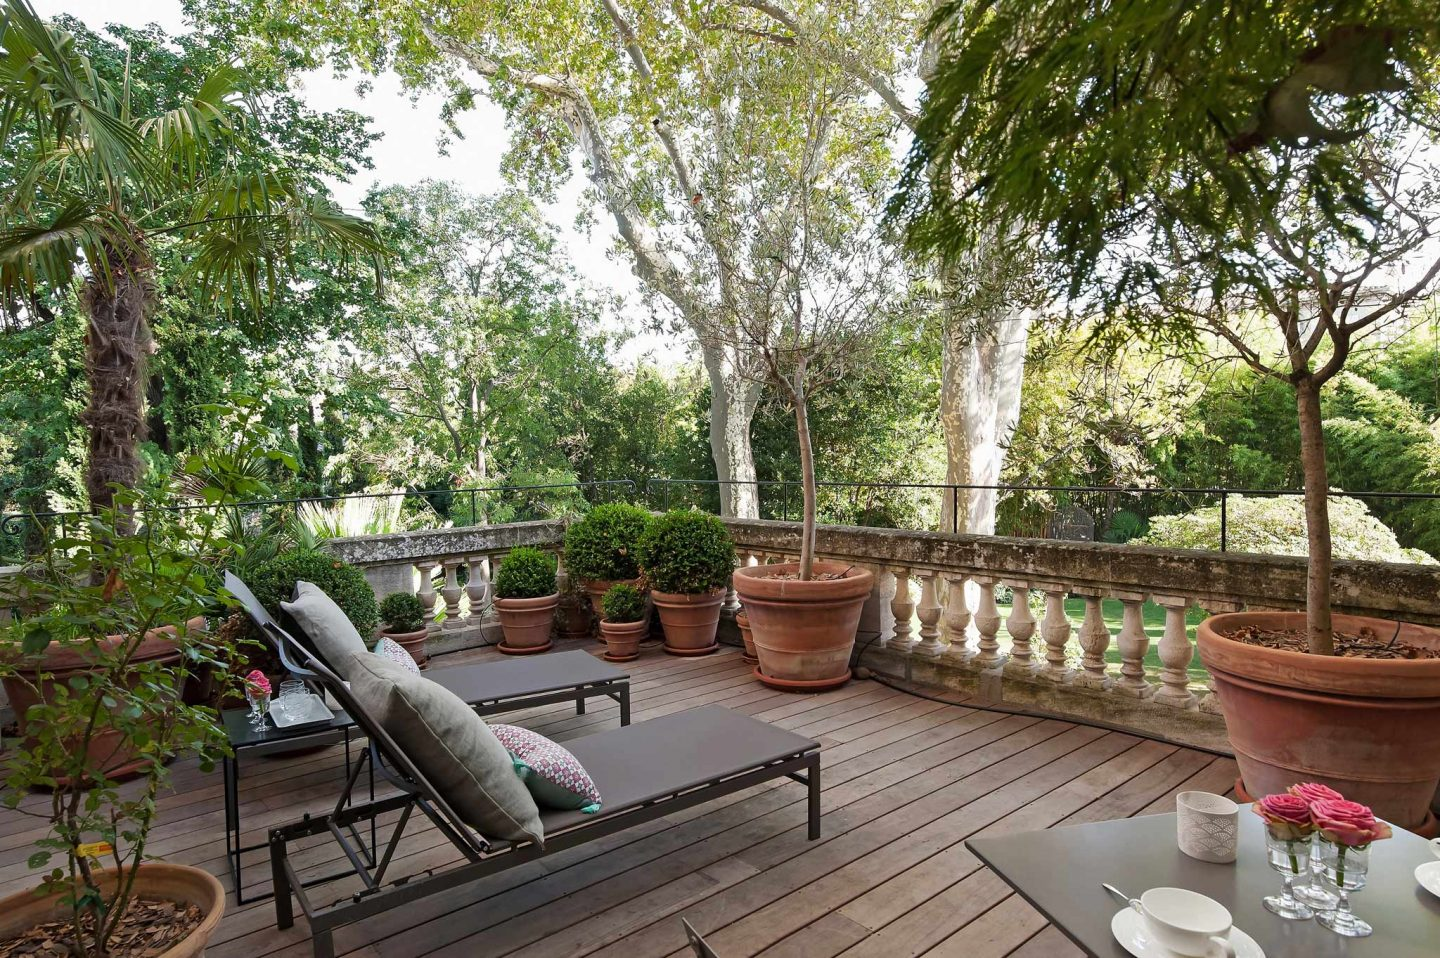 Terrace overlooking a lush garden in Avignon. Serene French Country Style interior design inspiration. The Serenity Suite at Avignon Hôtel Particulier. Luxurious and timeless restored 19th century French chateau in the South of France. Provencal romance, traditional architecture, modern French design, unique art, and European antiques. Photo: Haven In.